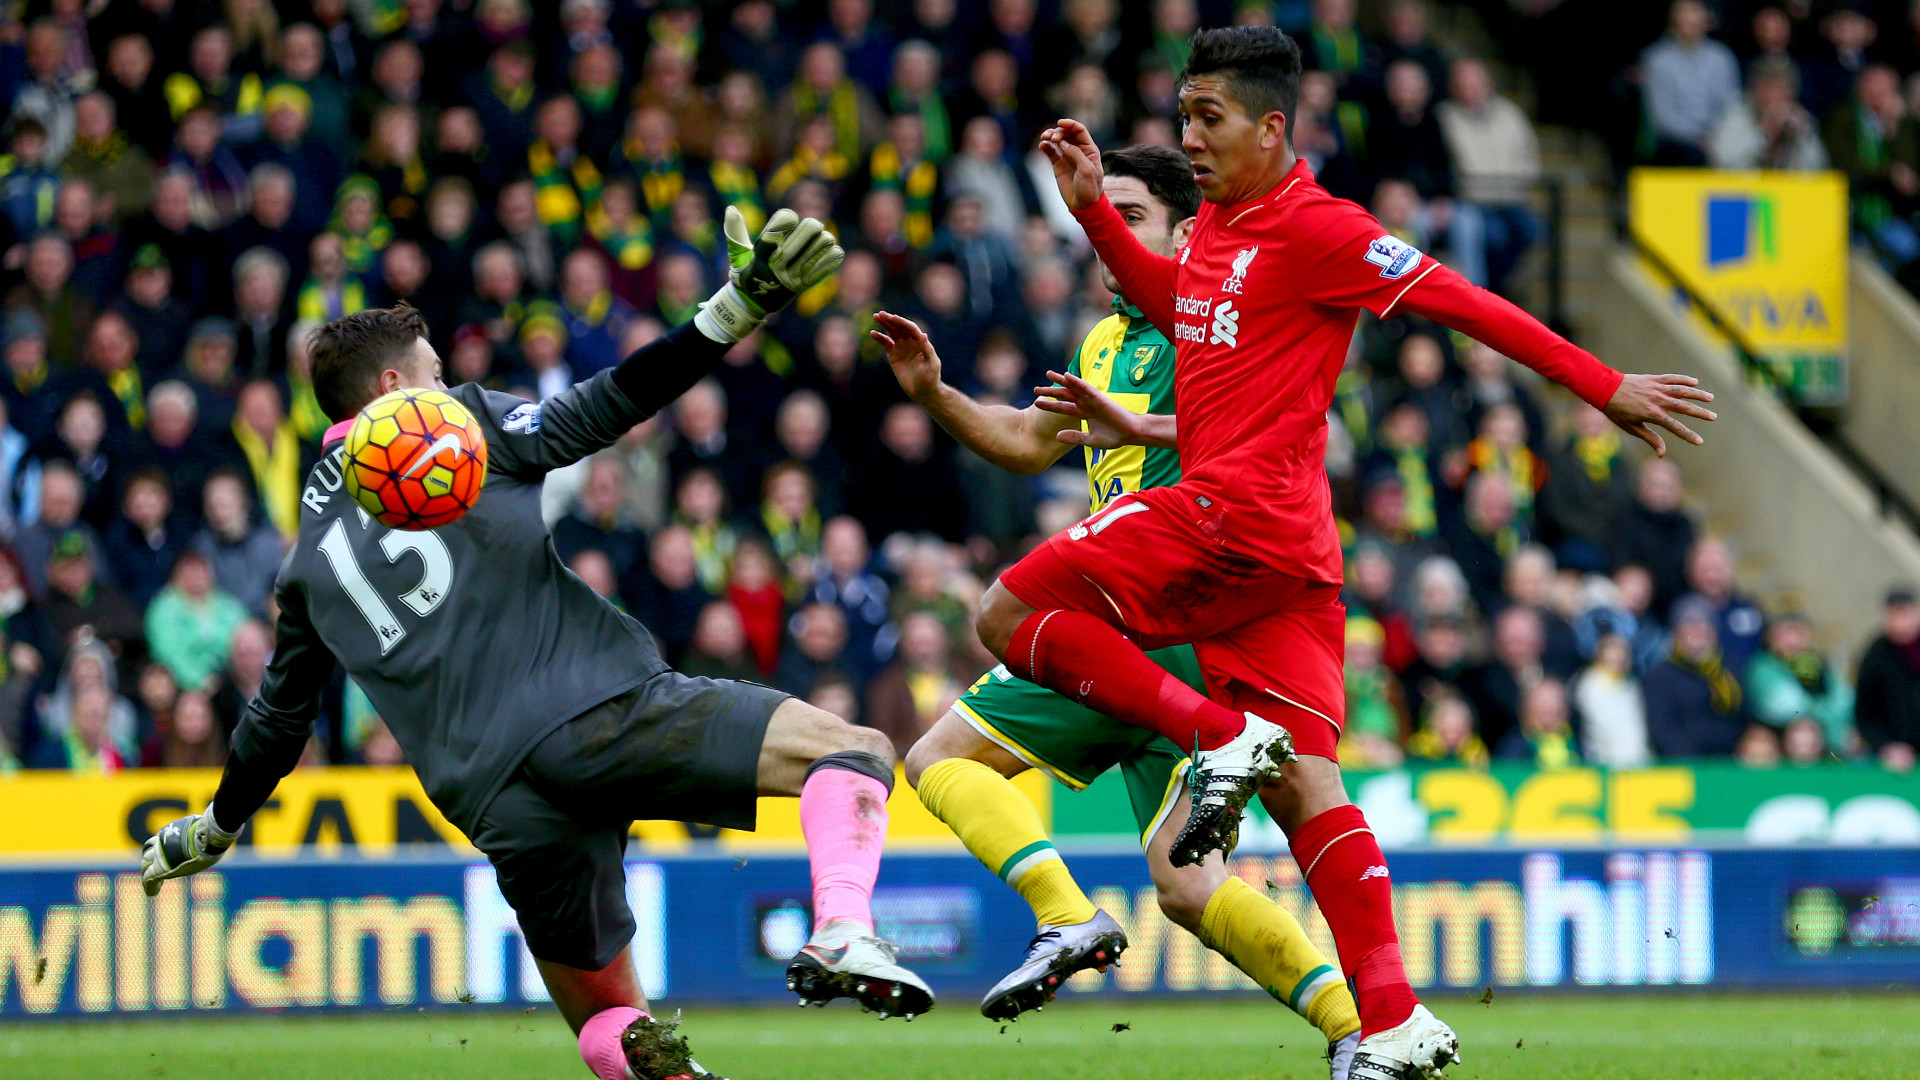 Trực tiếp Liverpool vs Norwich City